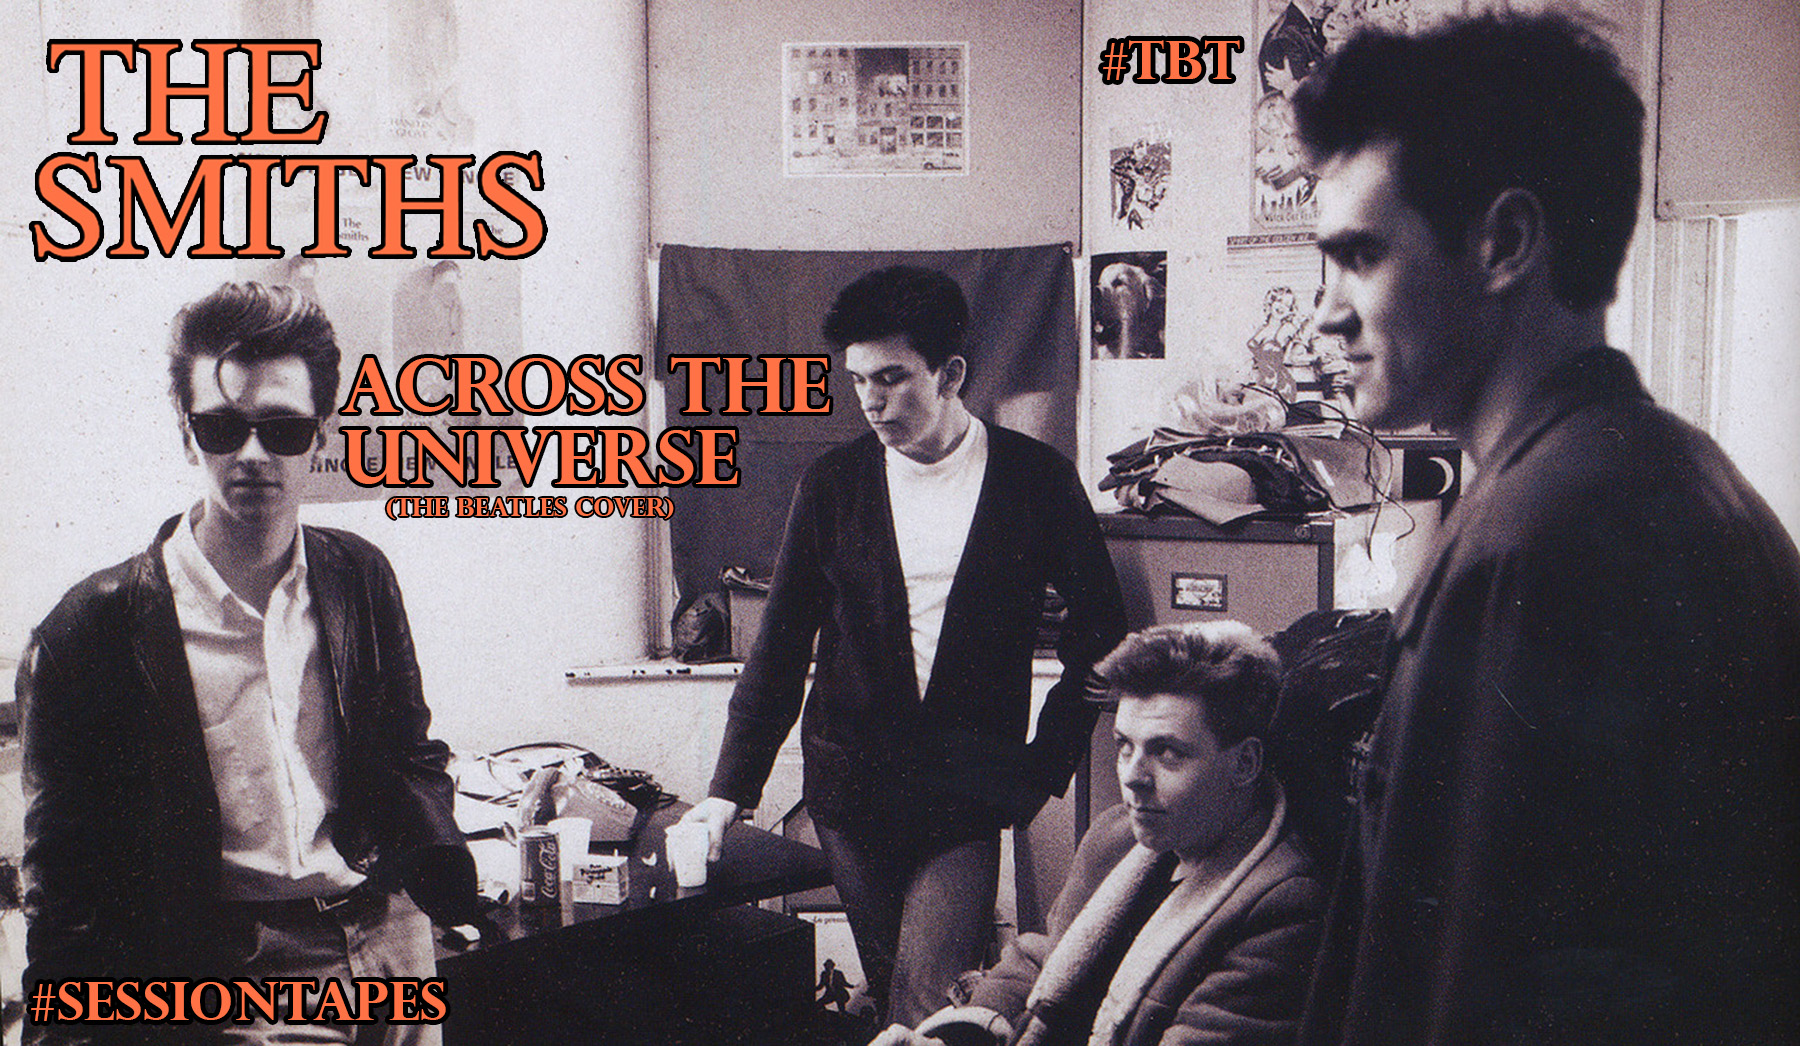 The Smiths – Across The Universe (The Beatles Cover Acoustic) #TBT